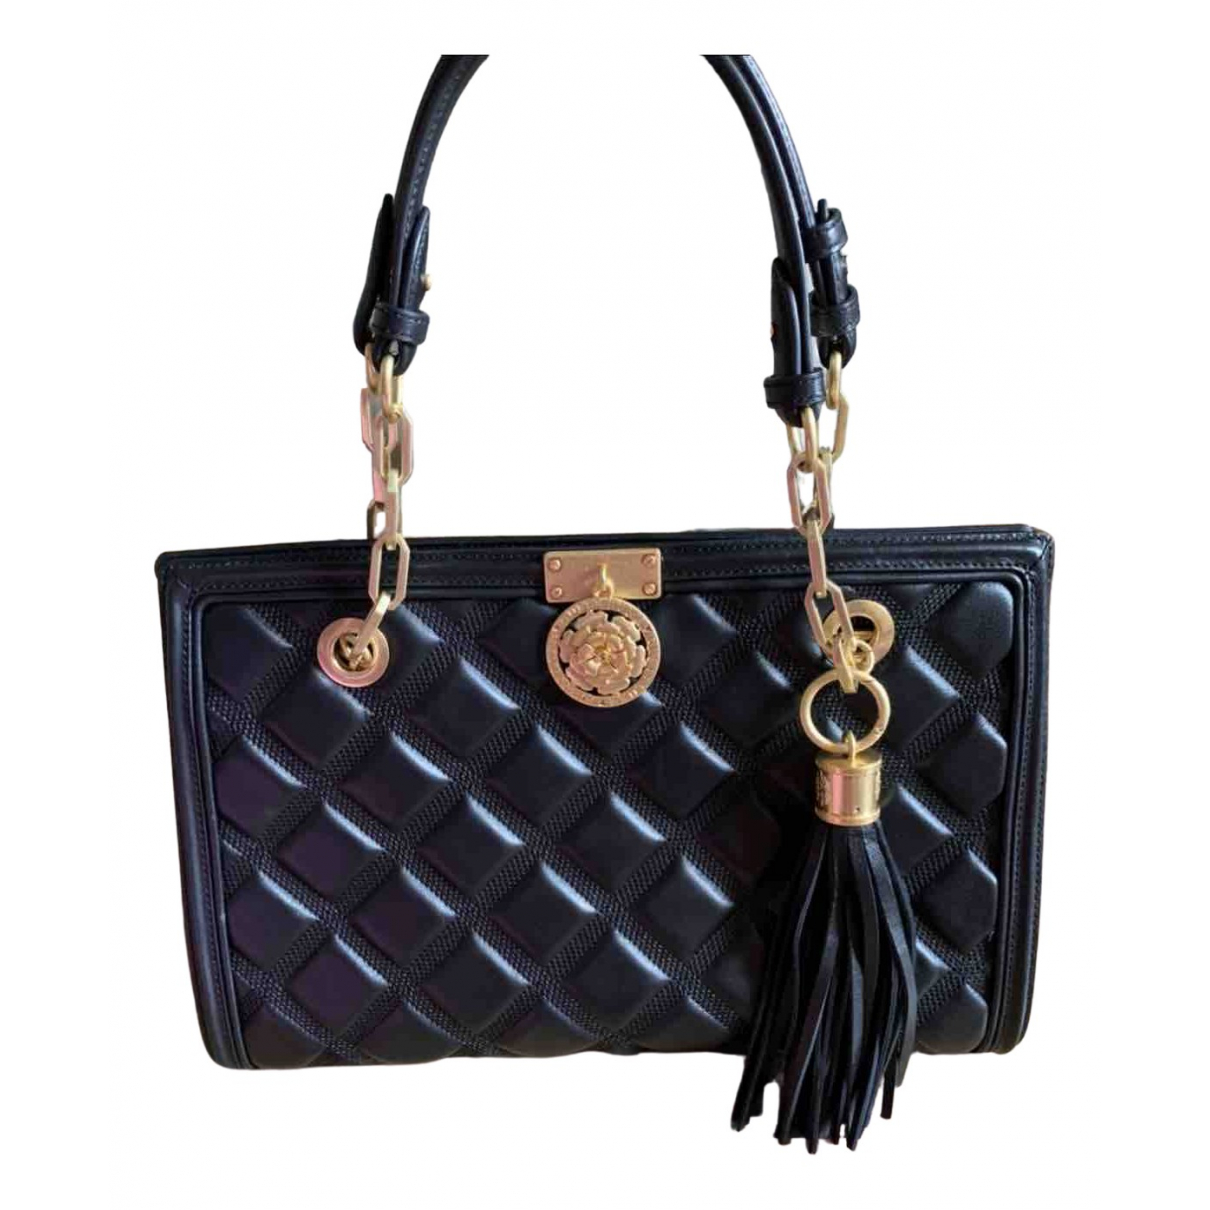 Guess \N Black Leather handbag for Women \N